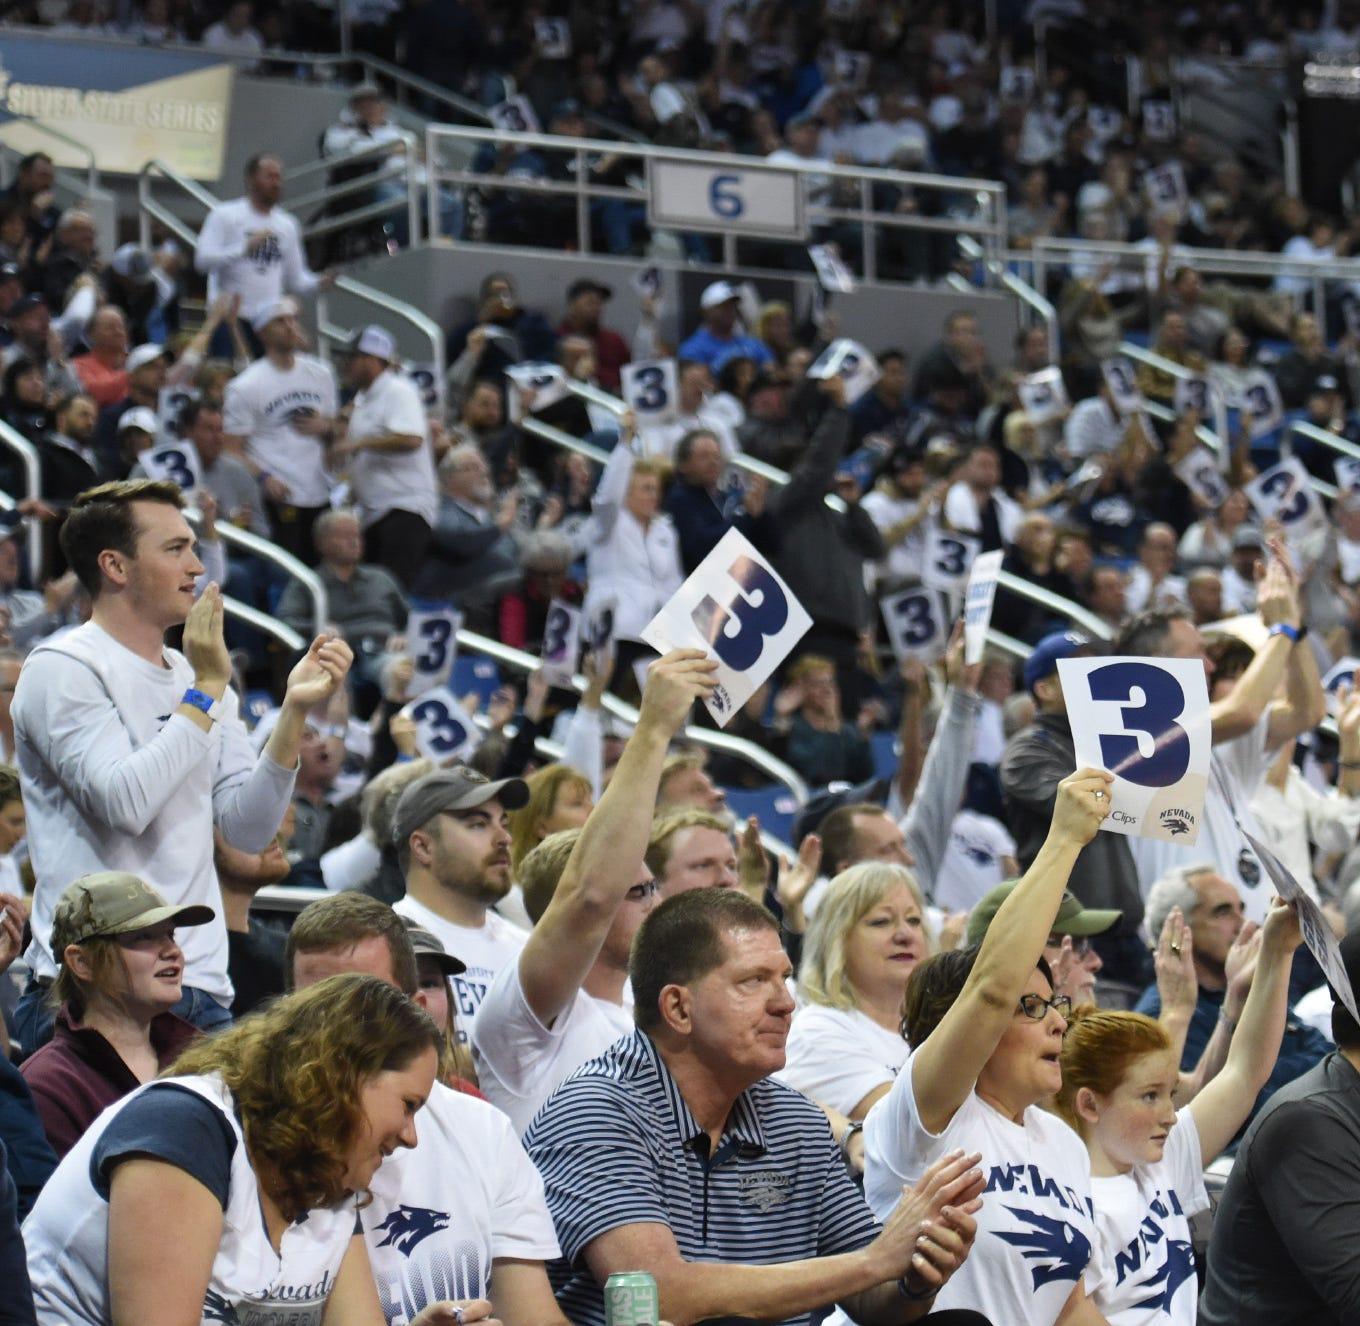 San Diego State at Nevada: Live Wolf Pack updates from Lawlor Events Center